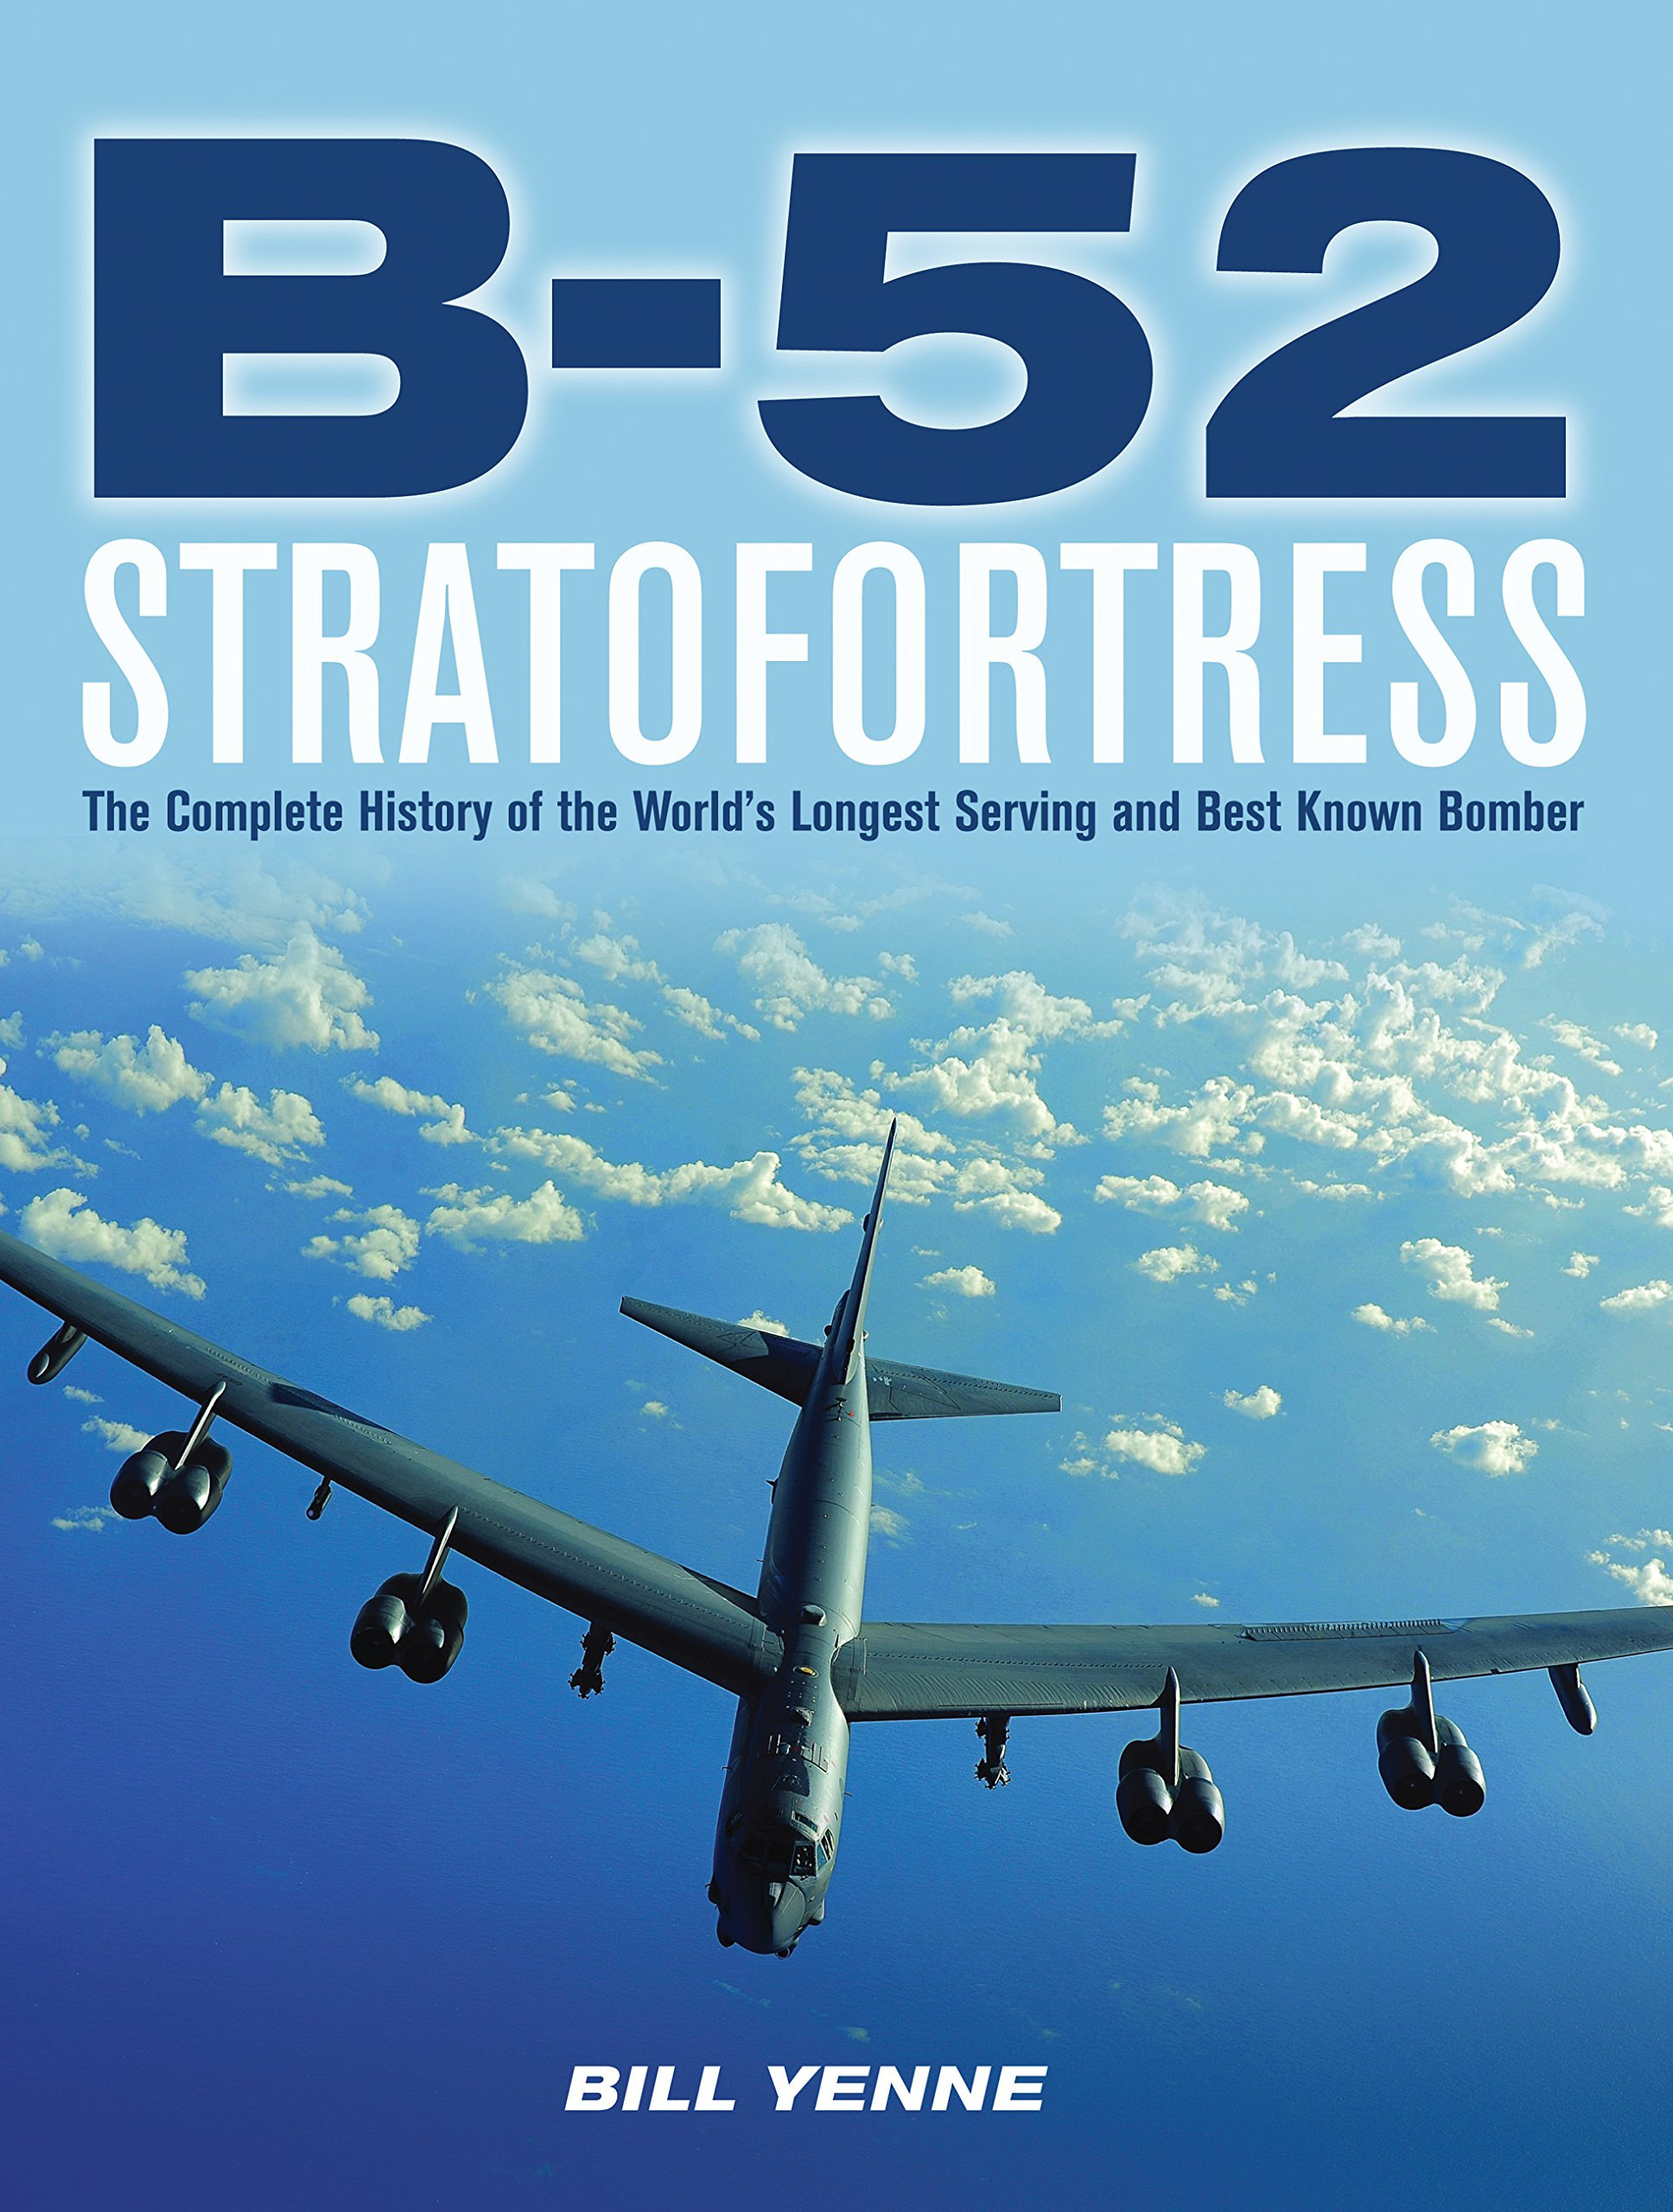 B-52 Stratofortress: The Complete History of the World's Longest Serving  and Best Known Bomber: Bill Yenne: 0752748343023: Amazon.com: Books